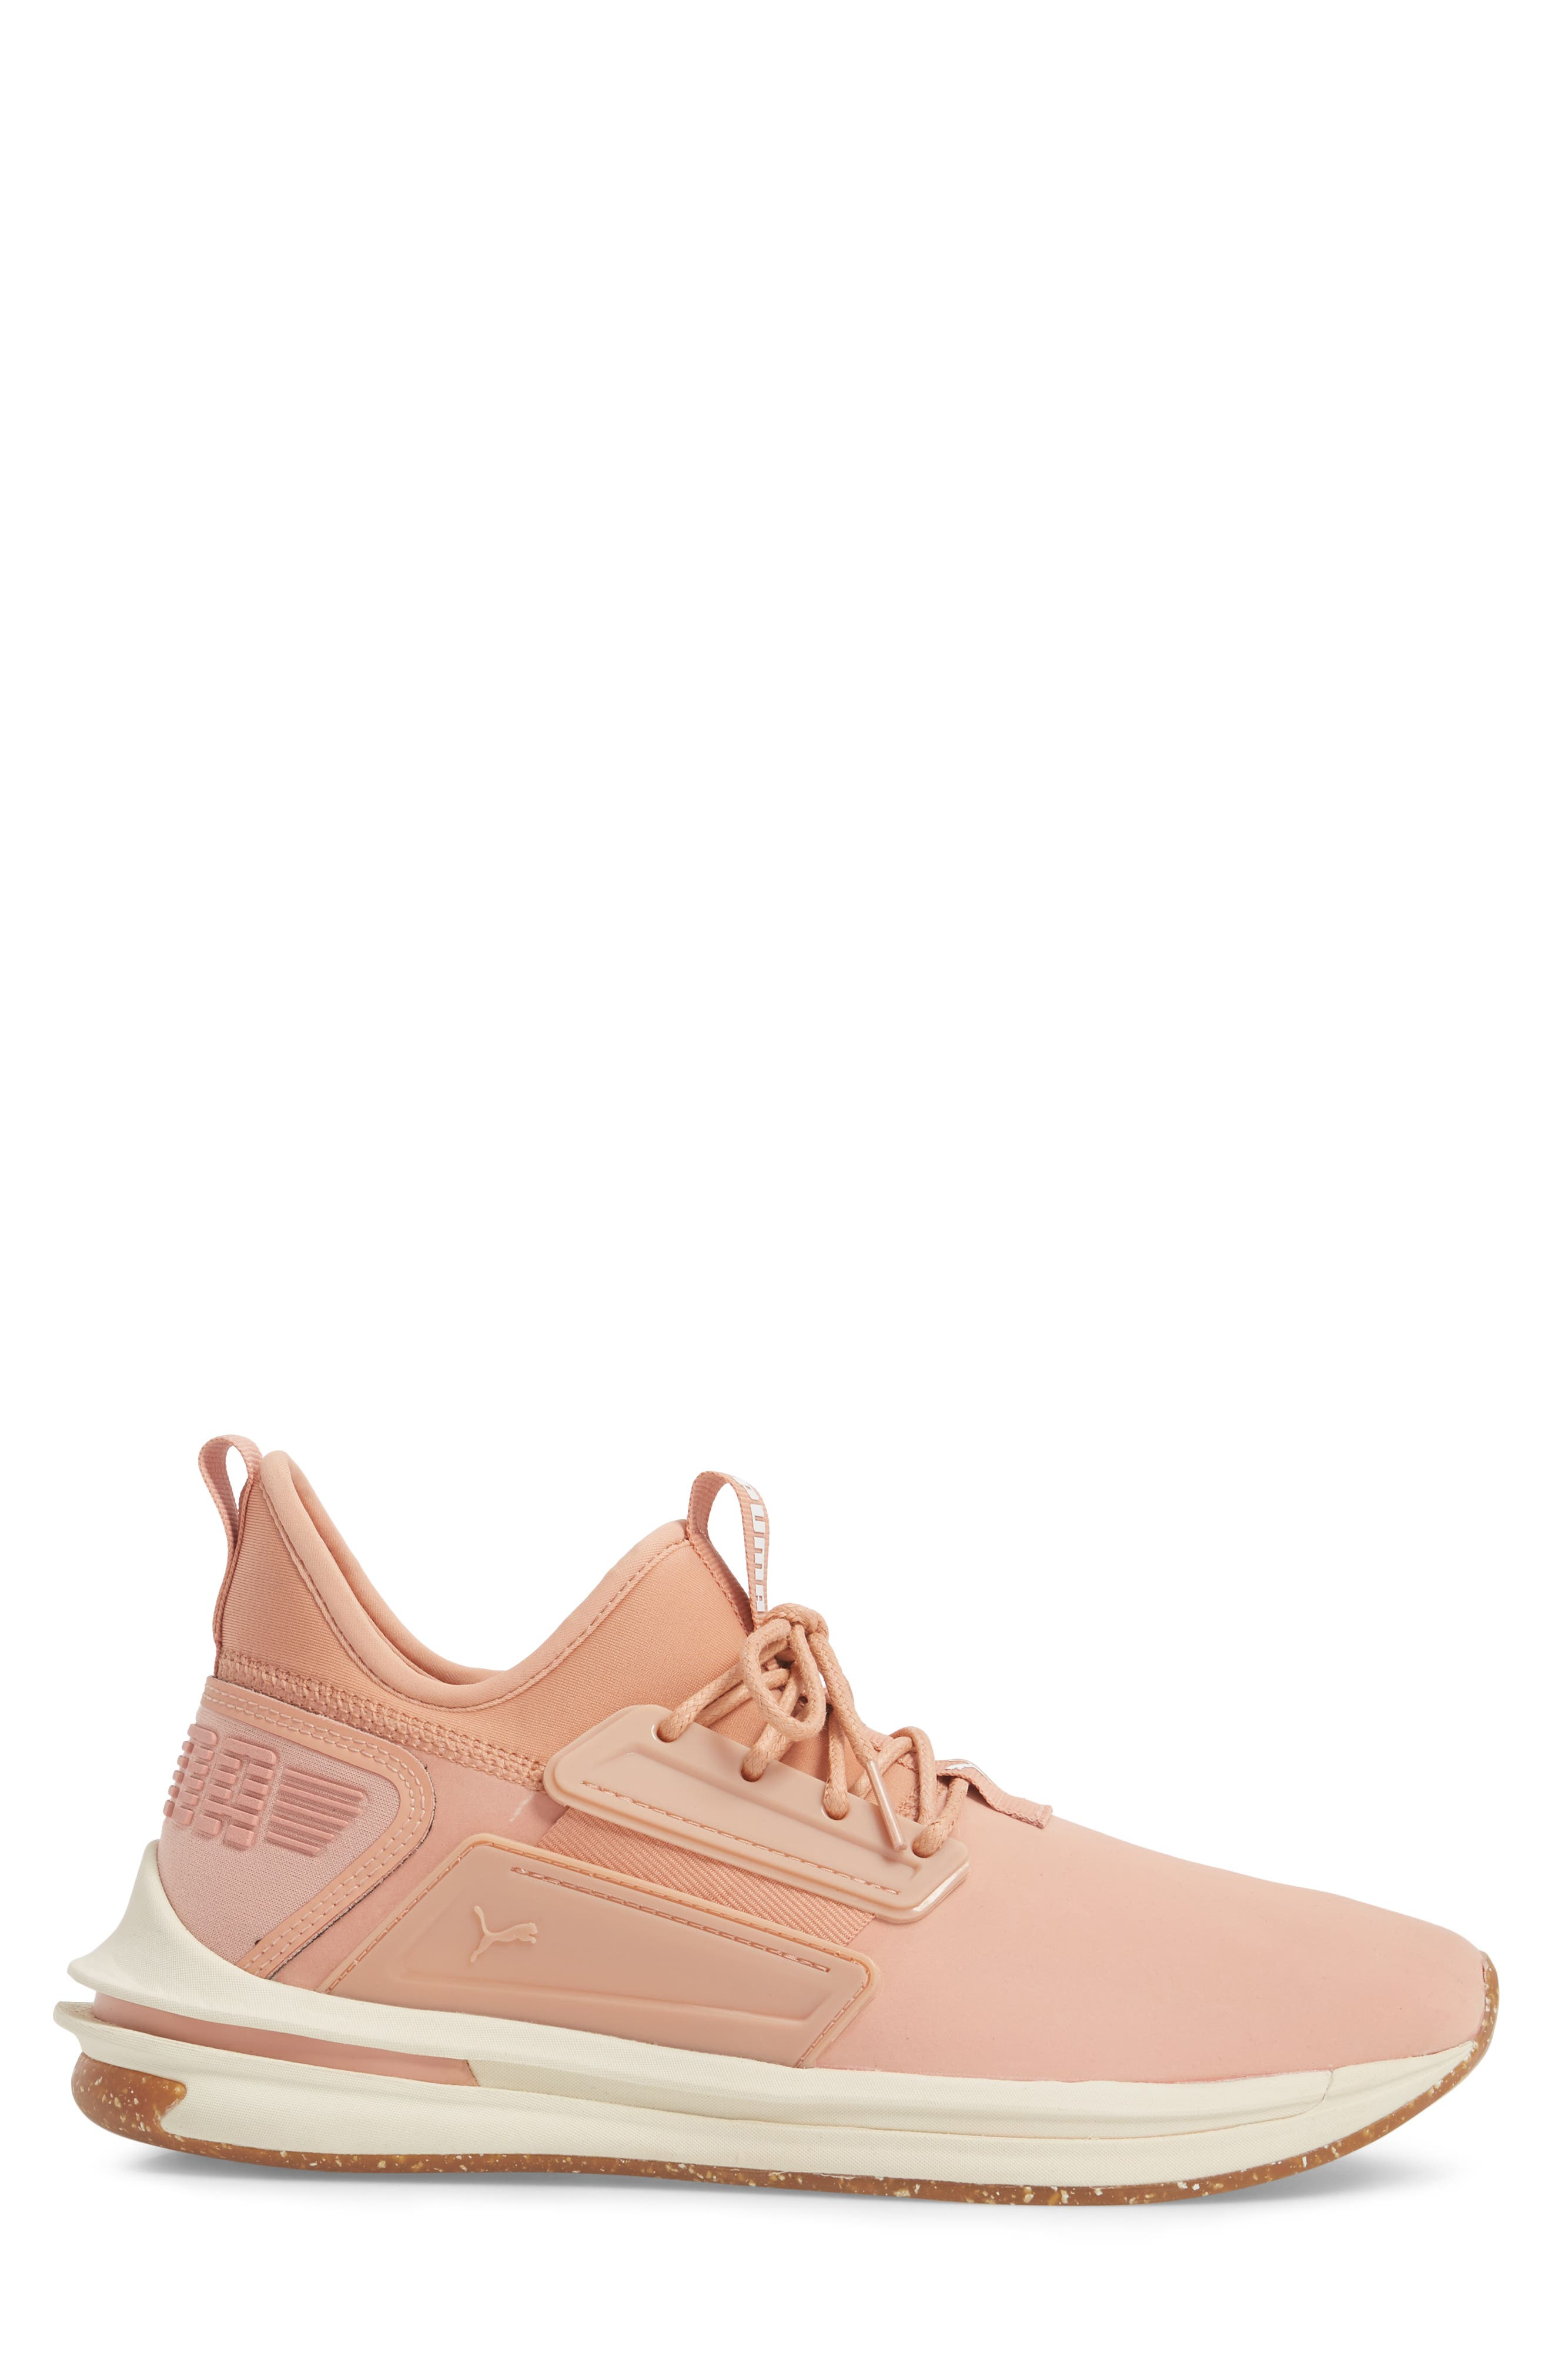 IGNITE Limitless SR Nature Sneaker,                             Alternate thumbnail 3, color,                             Muted Clay Leather/ Suede